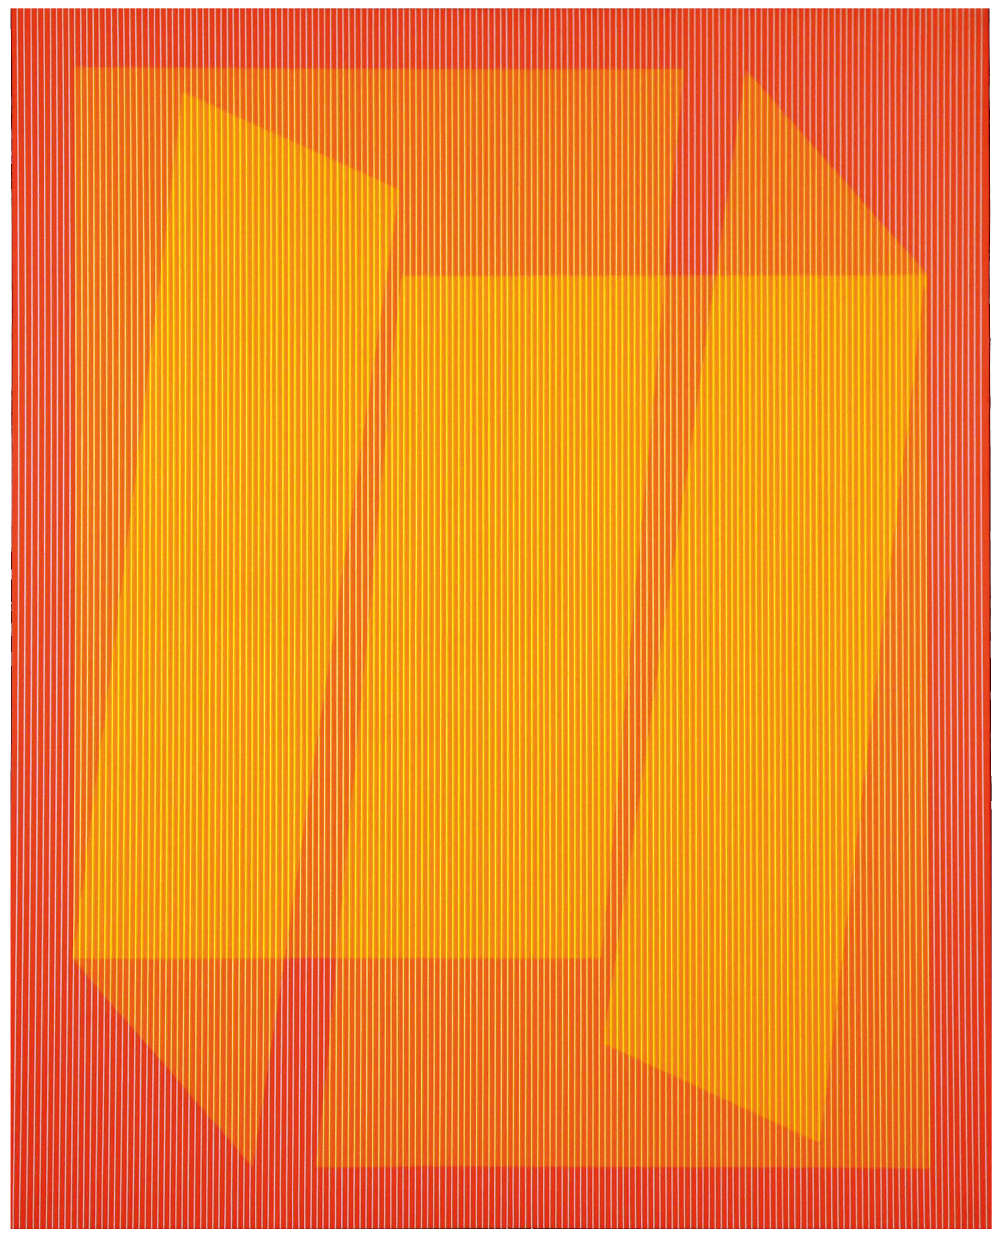 Julian Stańczak, Assemble, 1973-74. Acrylic on canvas, 127 x 101 cm, 50 x 39 3/4 in.